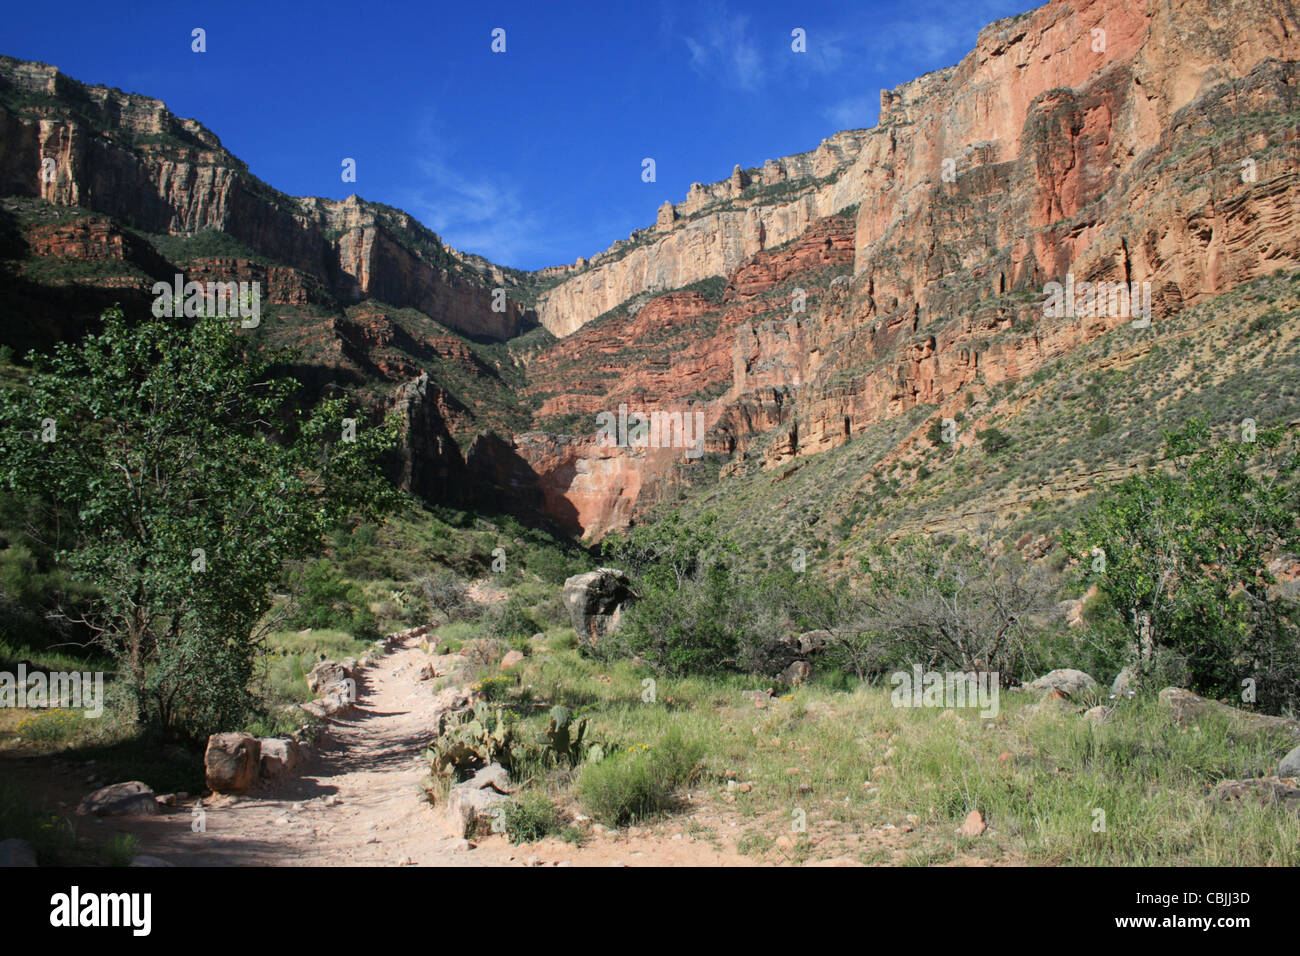 View up to south rim of the Grand Canyon from near Indian Gardens along the Bright Angel Trail in the Grand Canyon Stock Photo